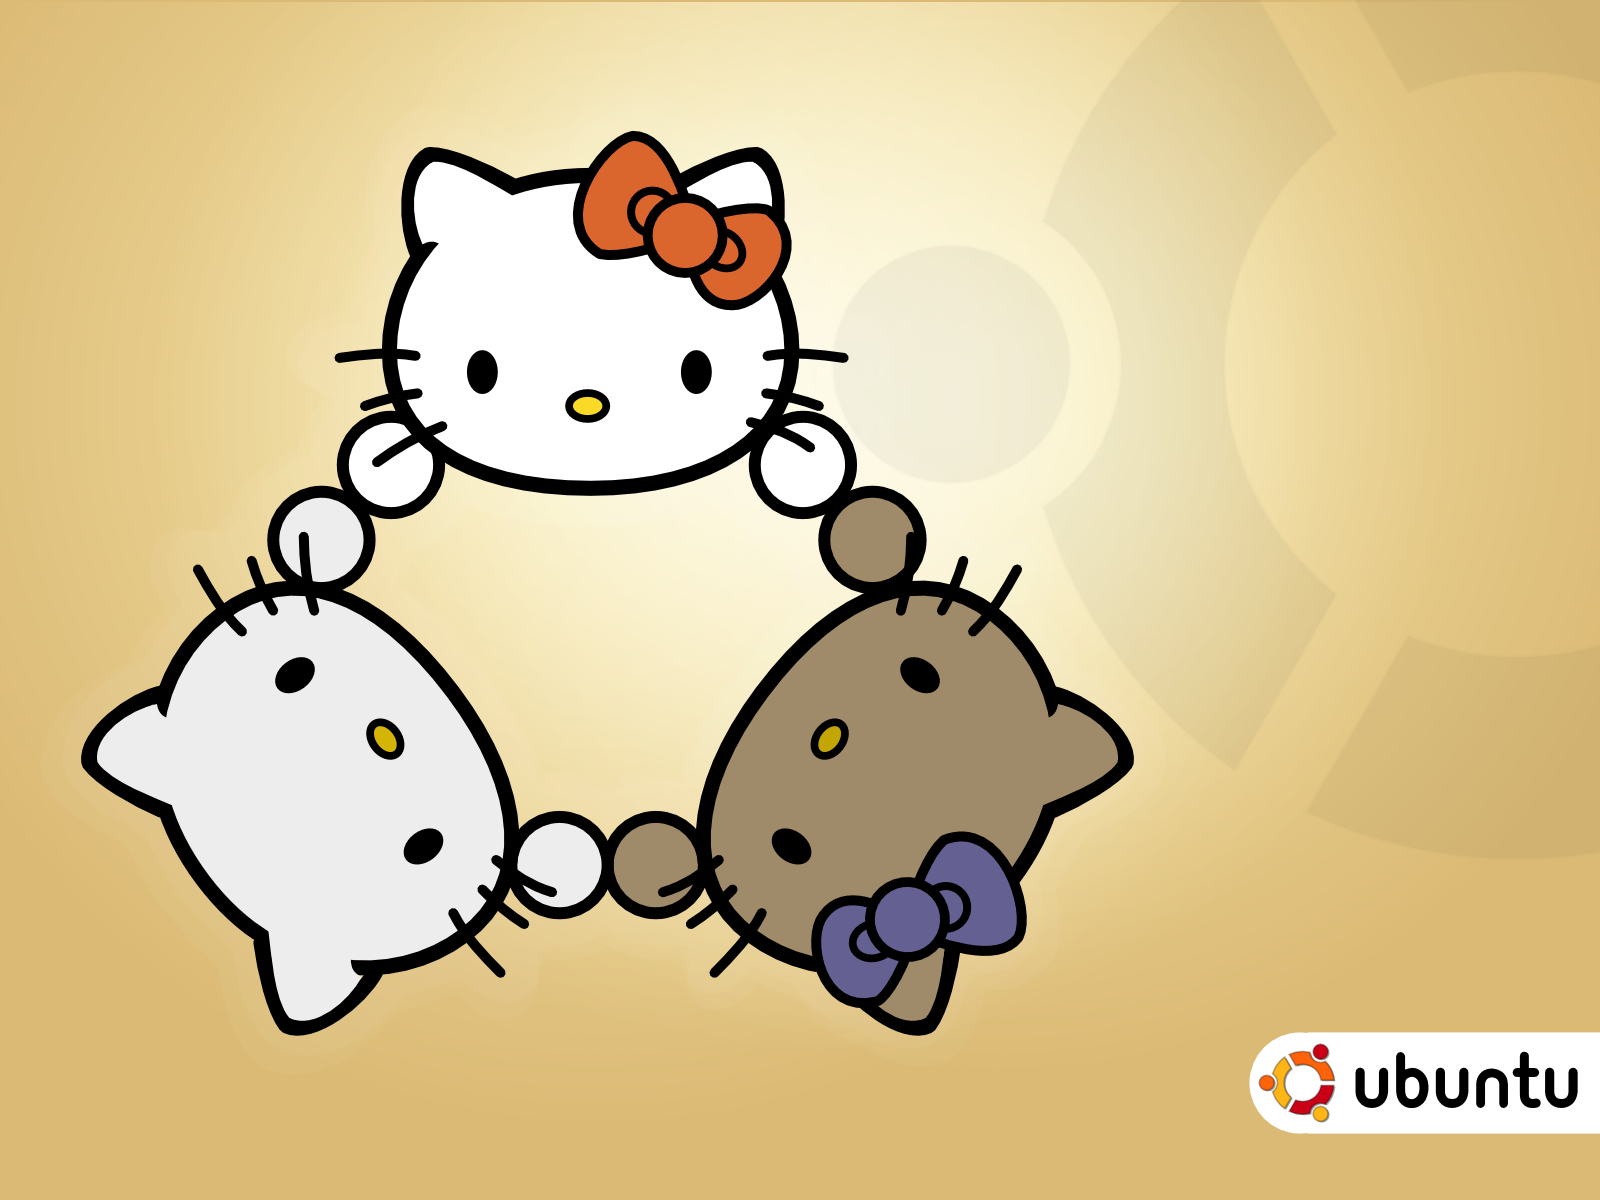 Ubuntu_Hello_Kitty_by_chipx86.png